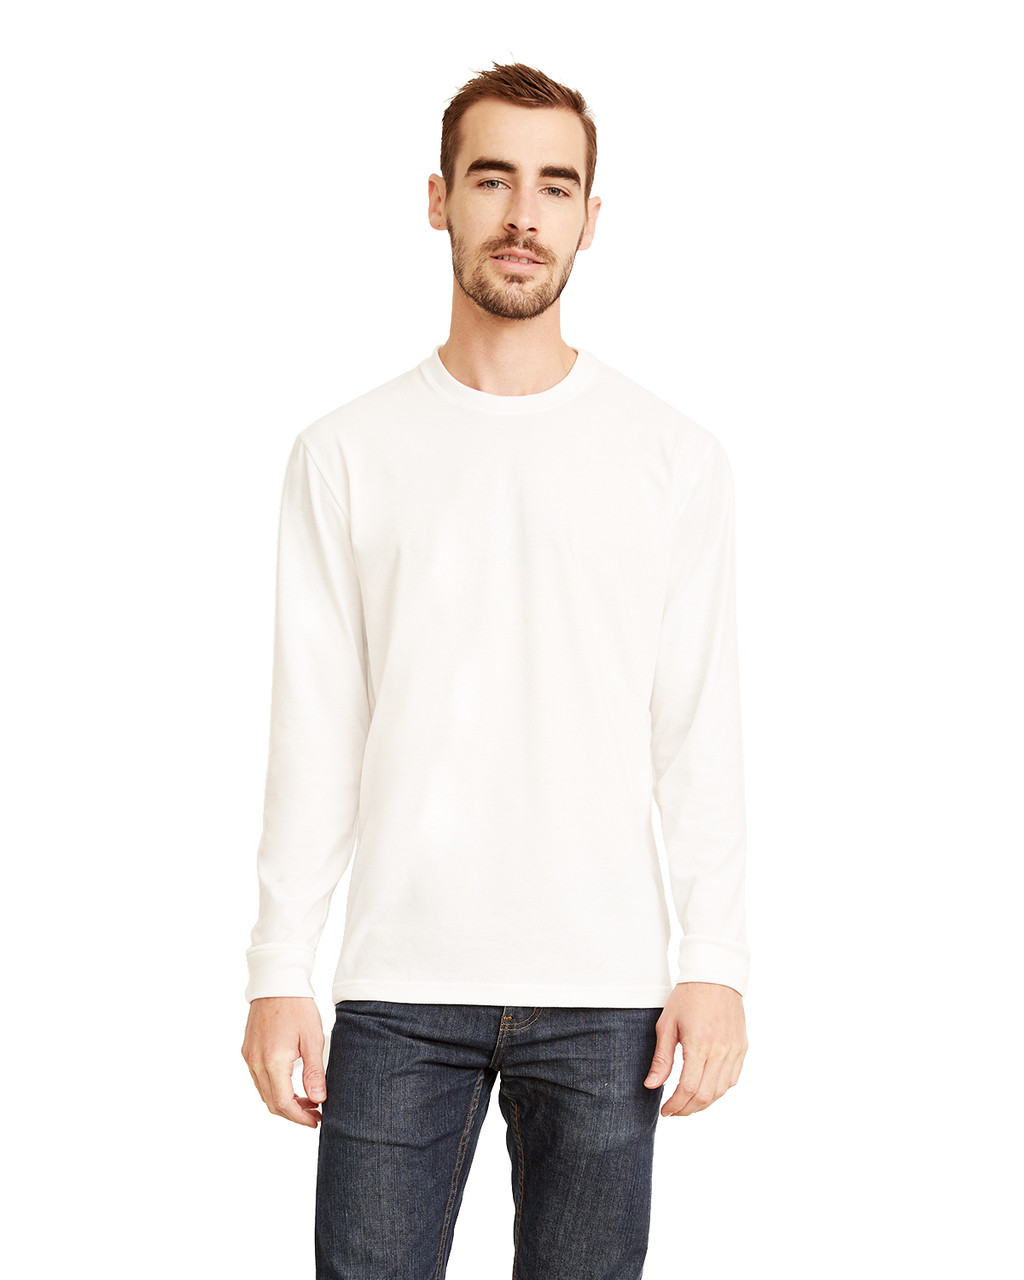 White - 6411 Next Level Unisex Sueded Long-Sleeve Crew Shirt | Blankclothing.ca